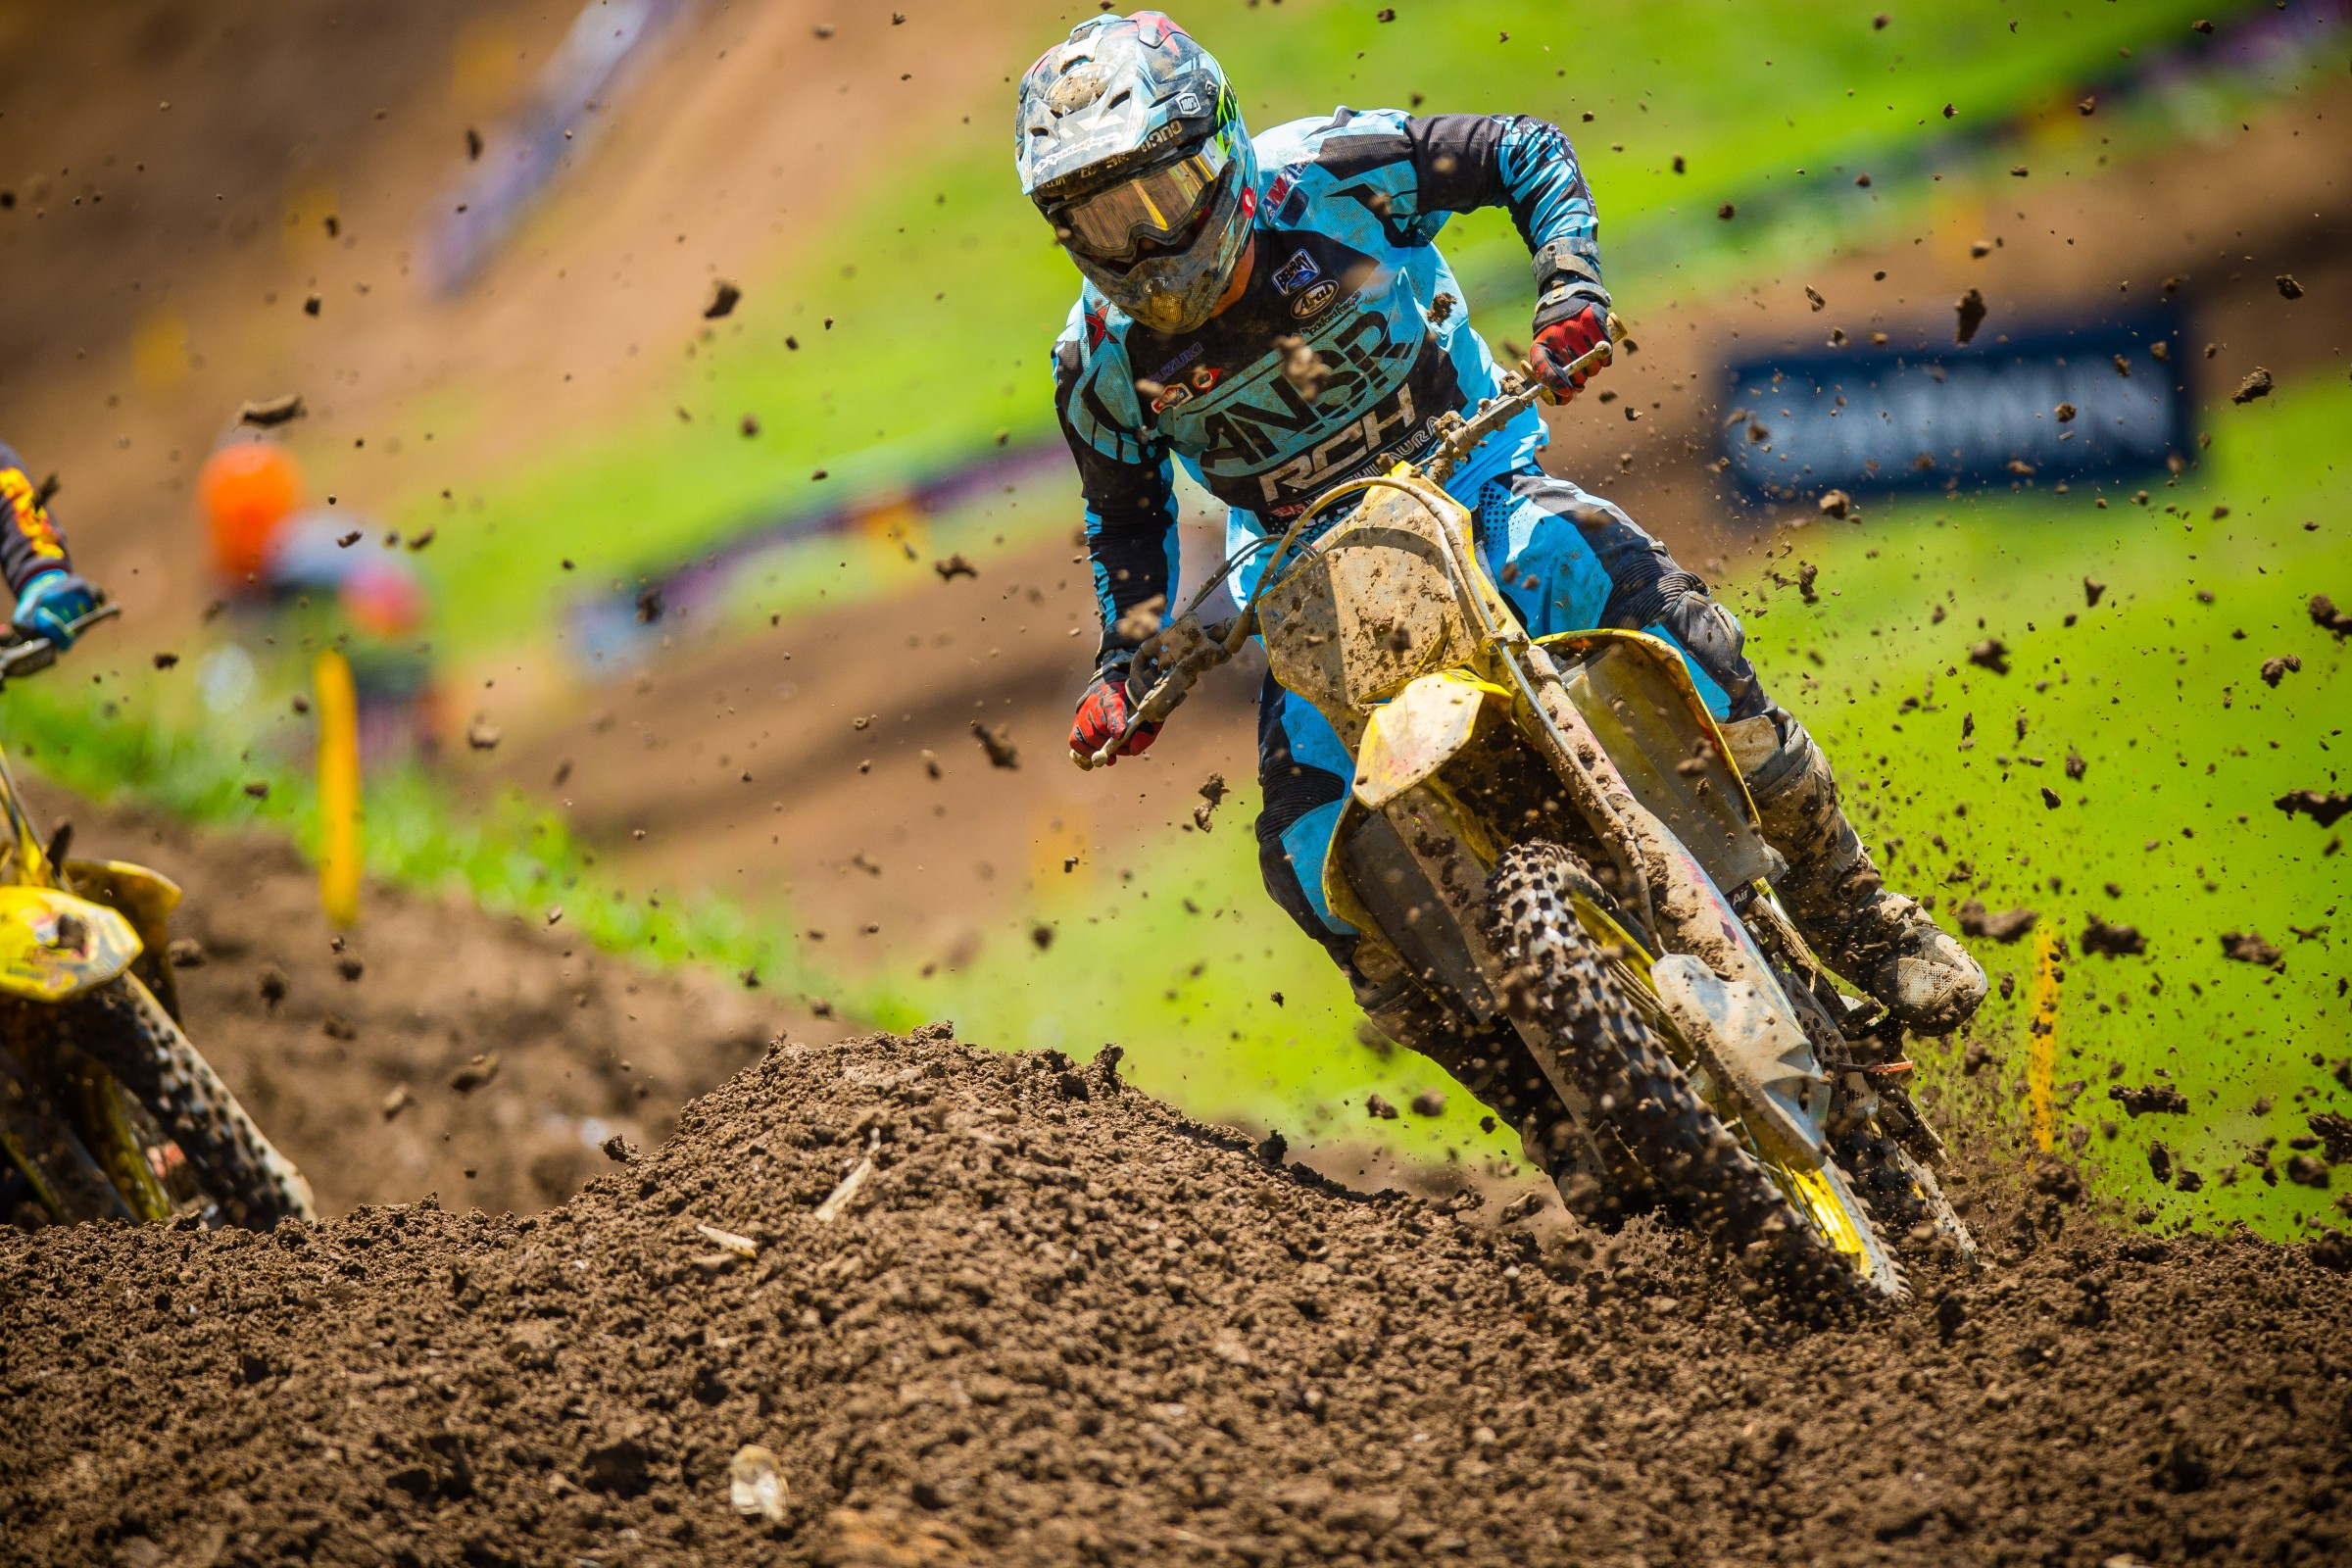 Justin Bogle bounced back in the second moto to finish seventh overall.